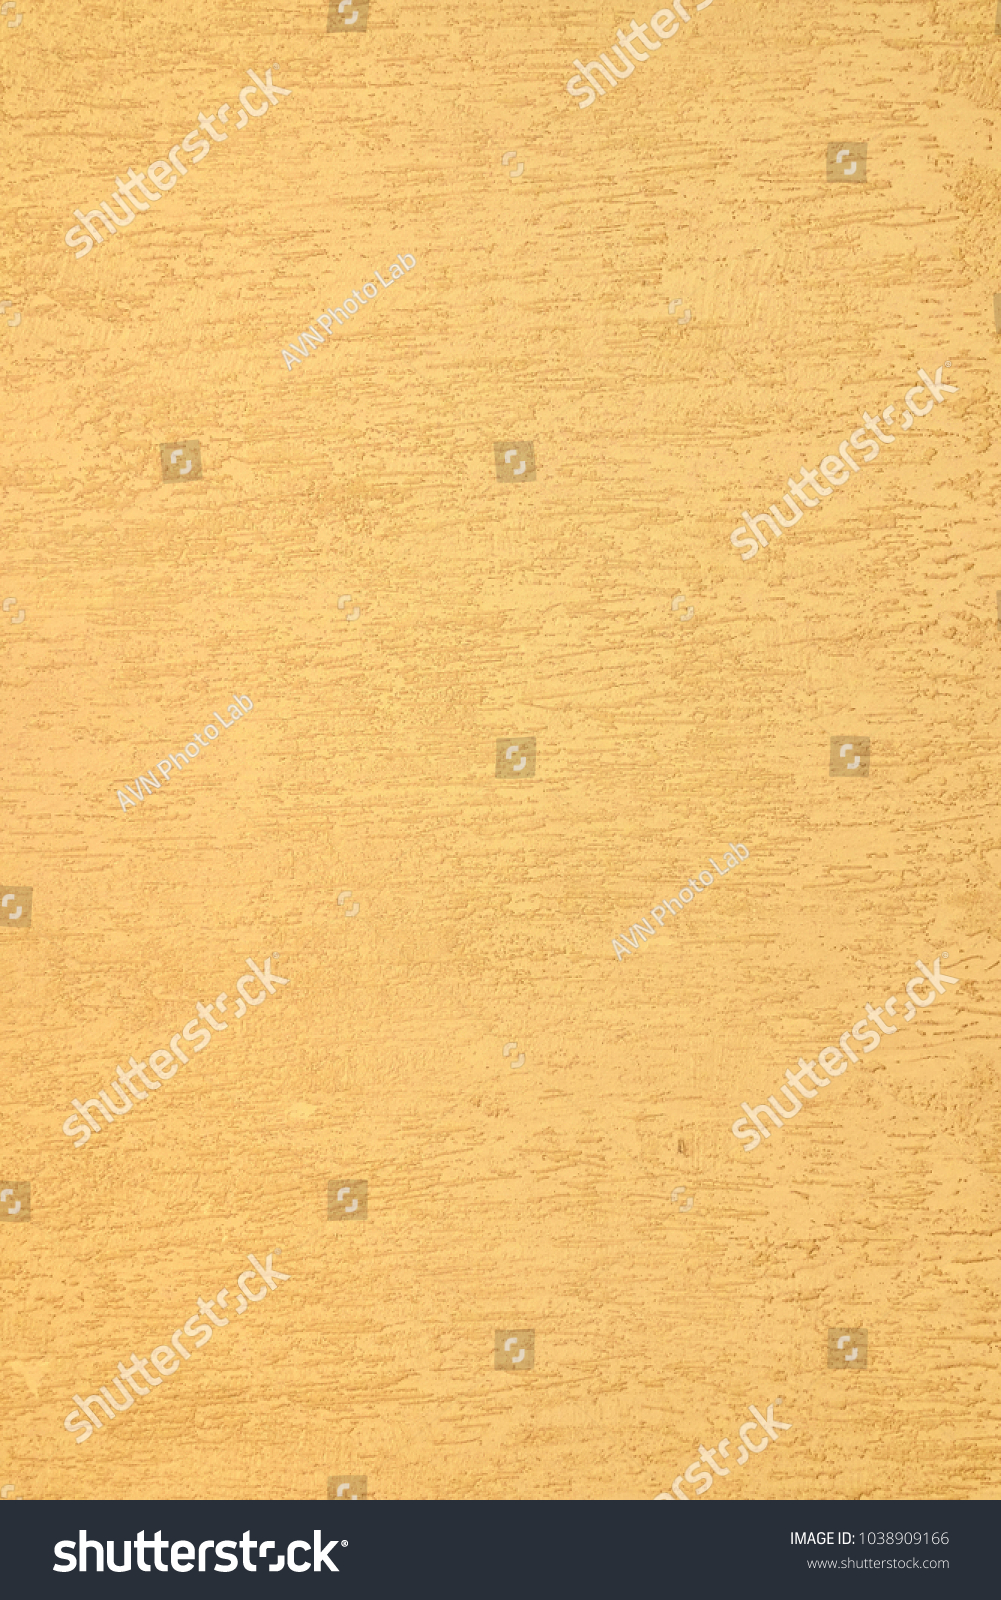 Textured Yellow Plaster Wall Vertical Background Stock Photo ...